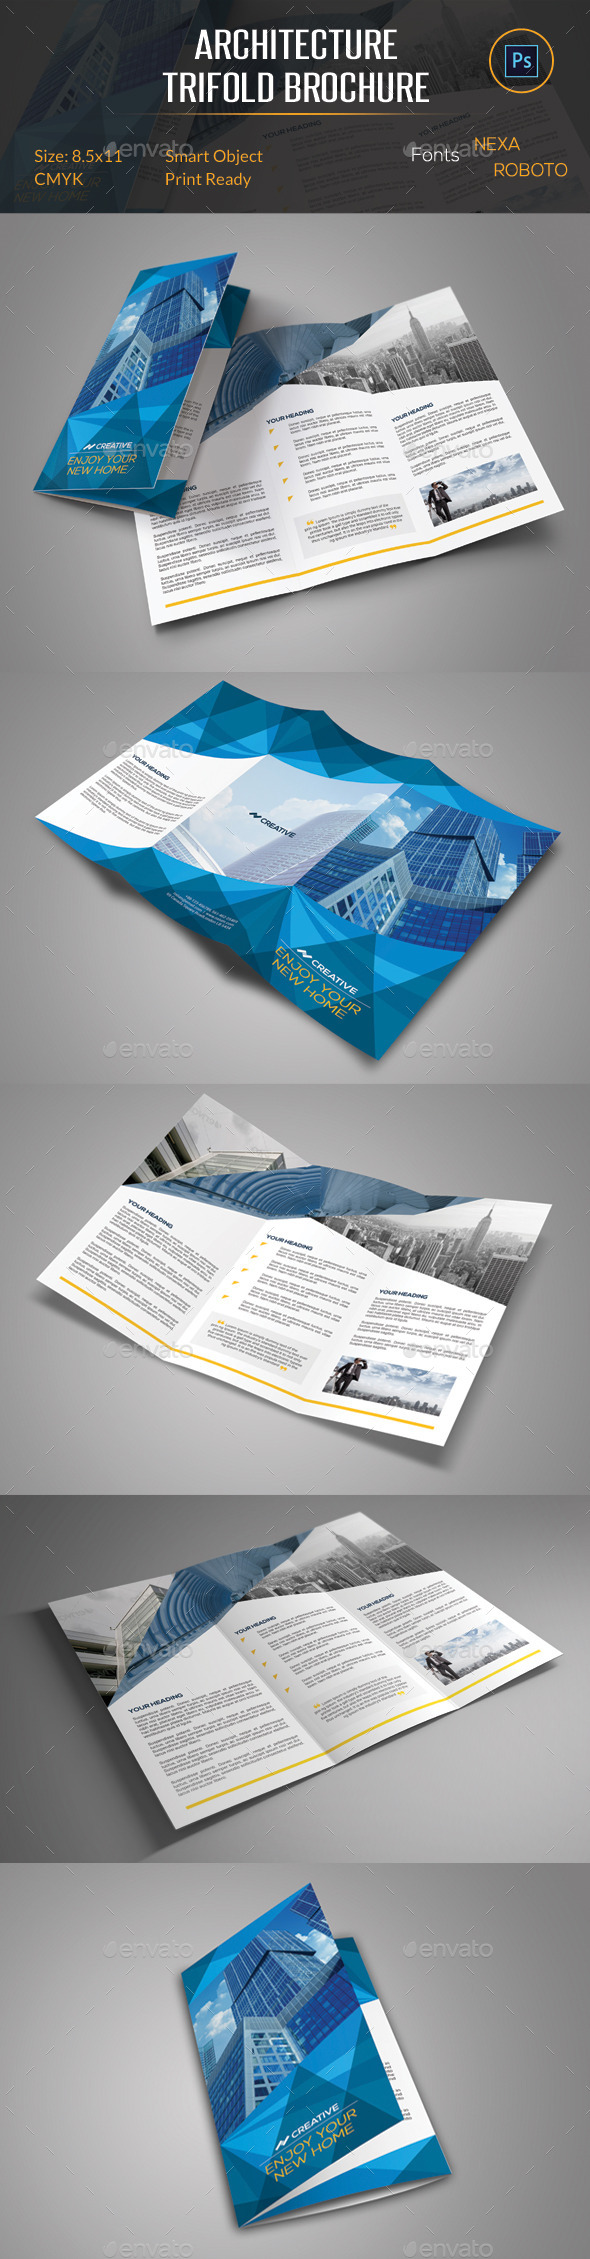 Architecture Trifold Brochure By Orcshape Graphicriver